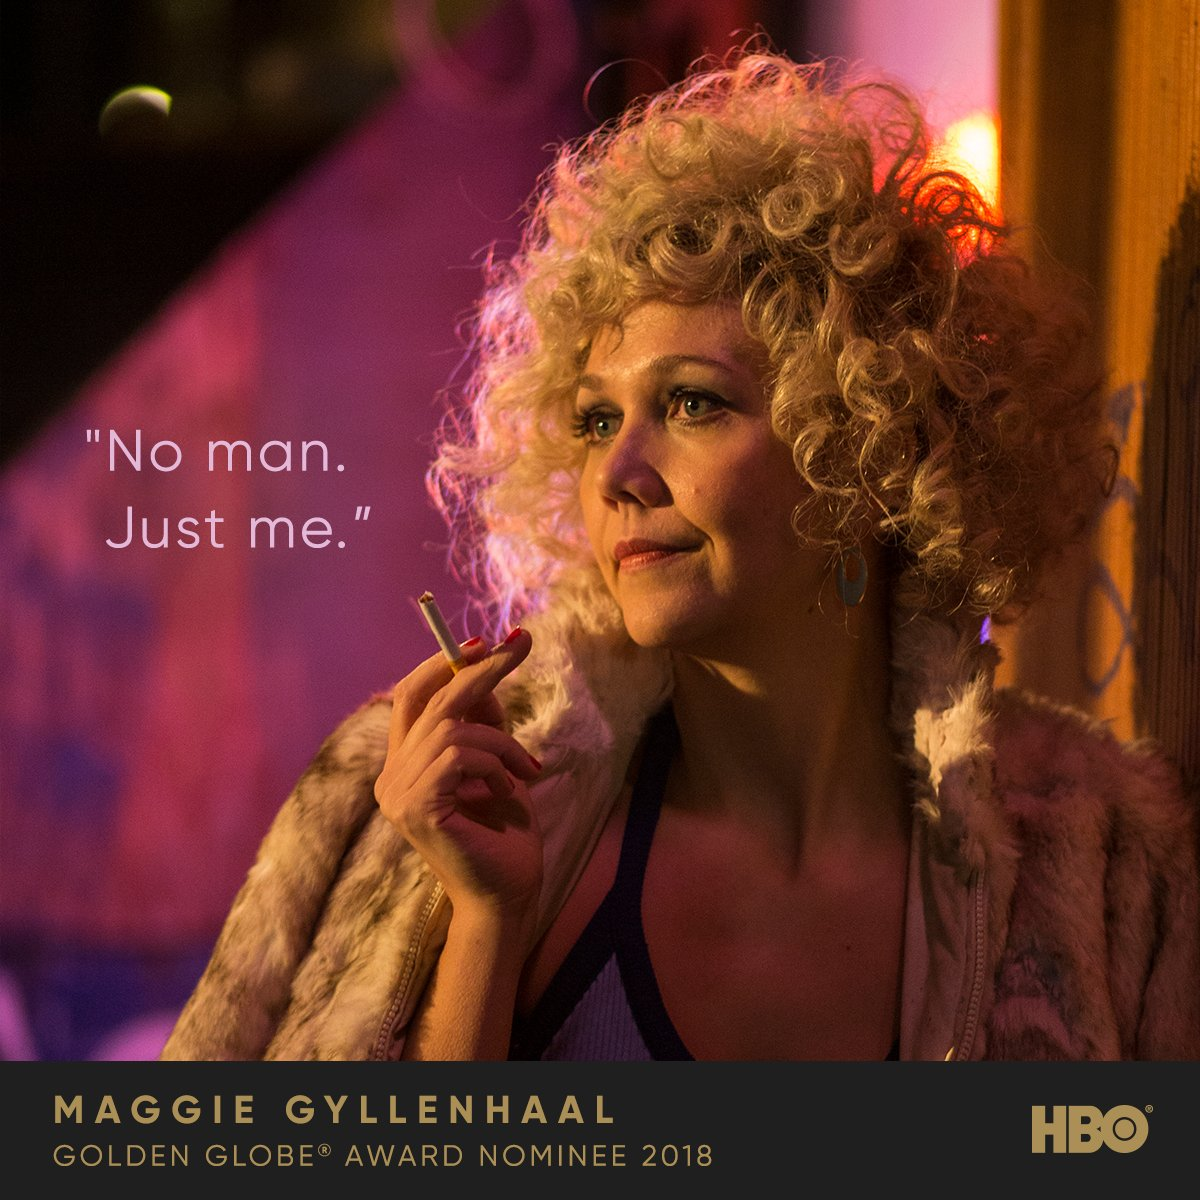 RT @HBO: No man, just her. Best of luck to @mgyllenhaal on her #GoldenGlobes nomination for #TheDeuce. https://t.co/yD32IOBJ65